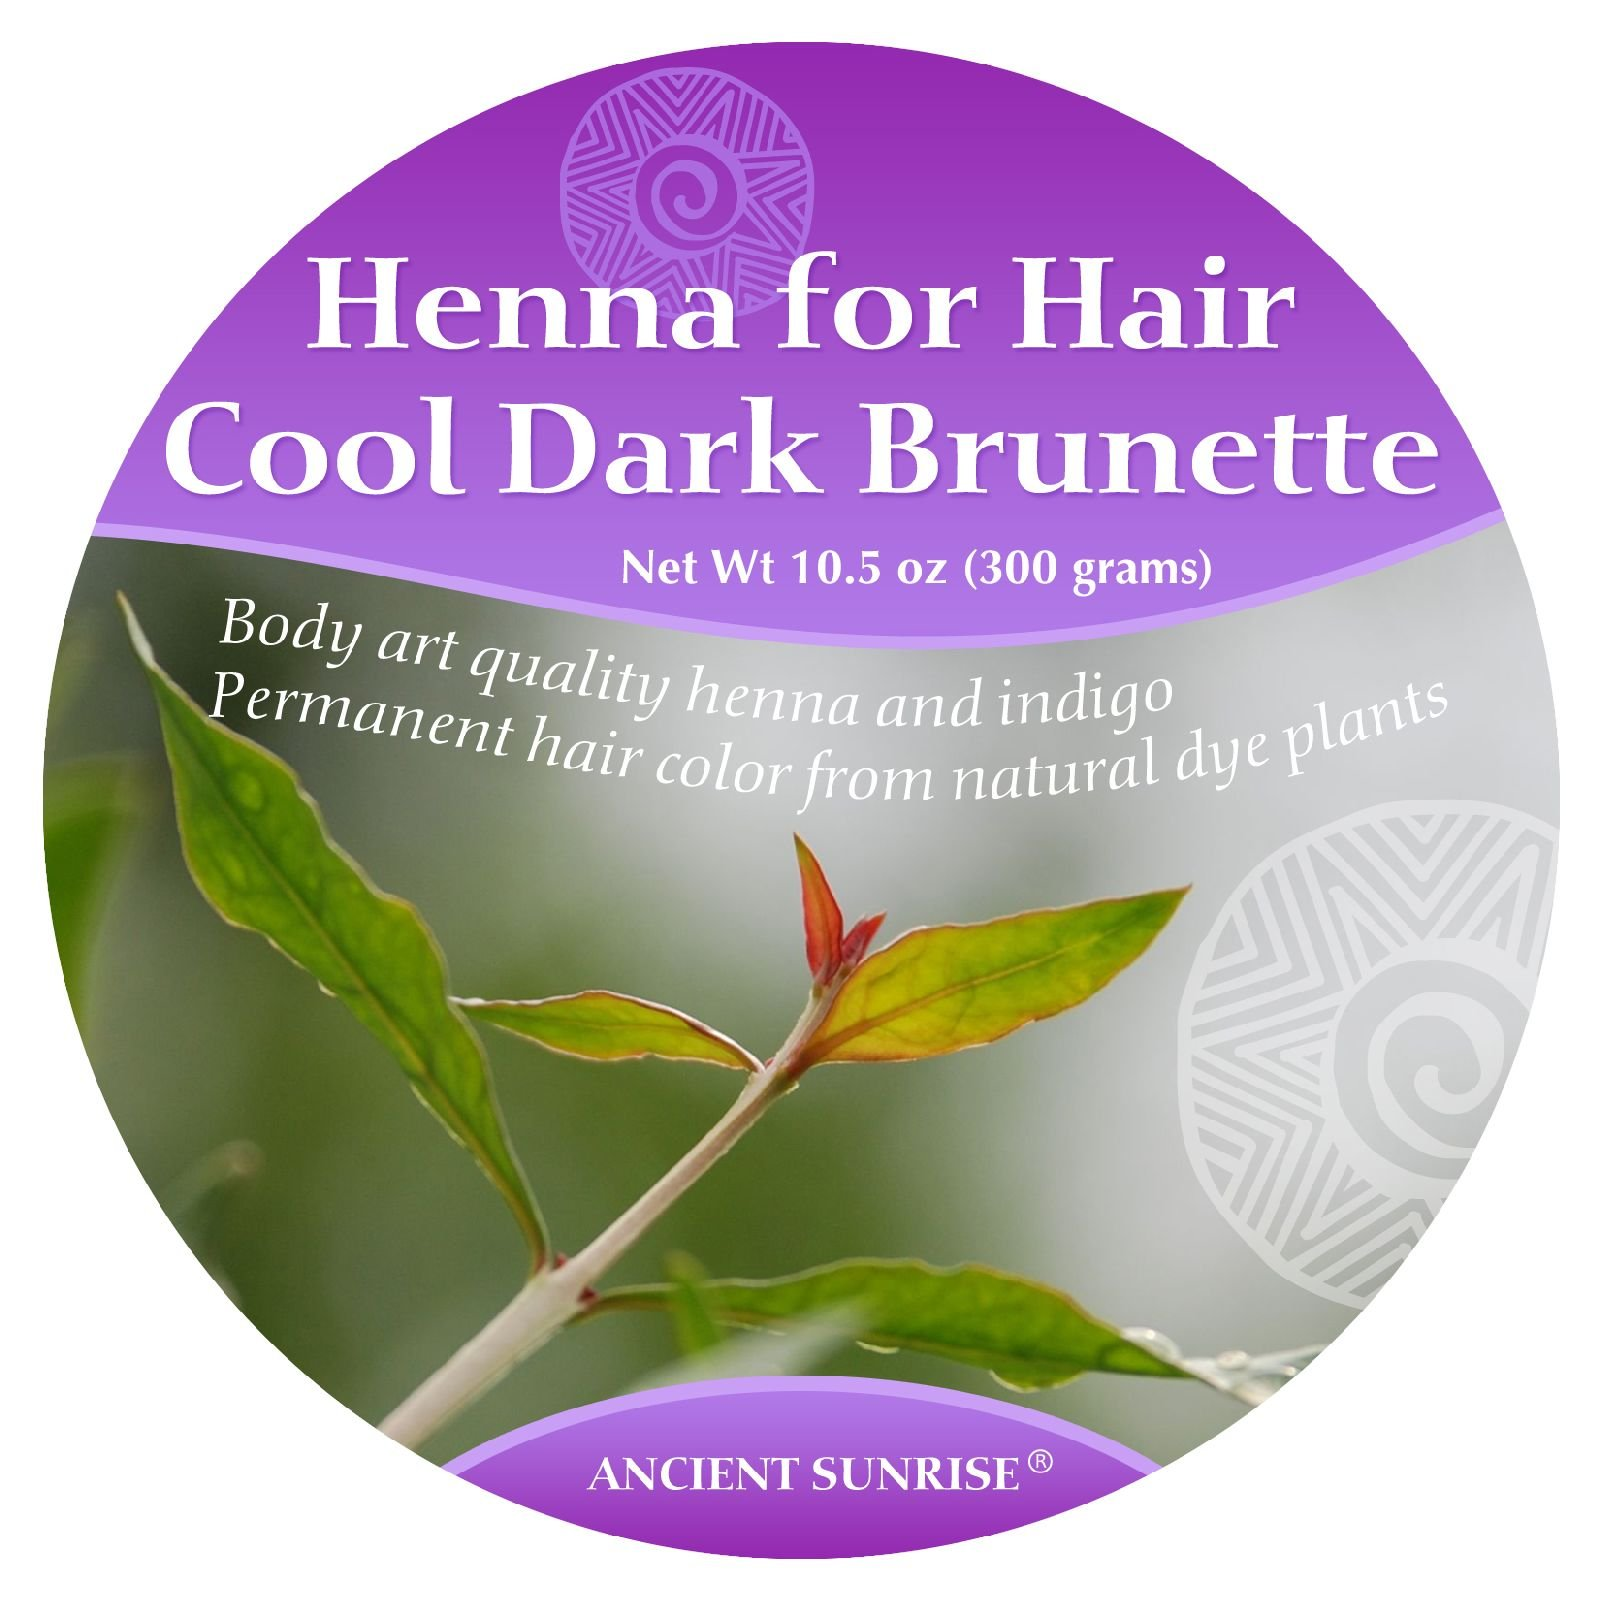 Ancient Sunrise Henna For Hair Cool Dark Brunette Kit by Ancient Sunrise